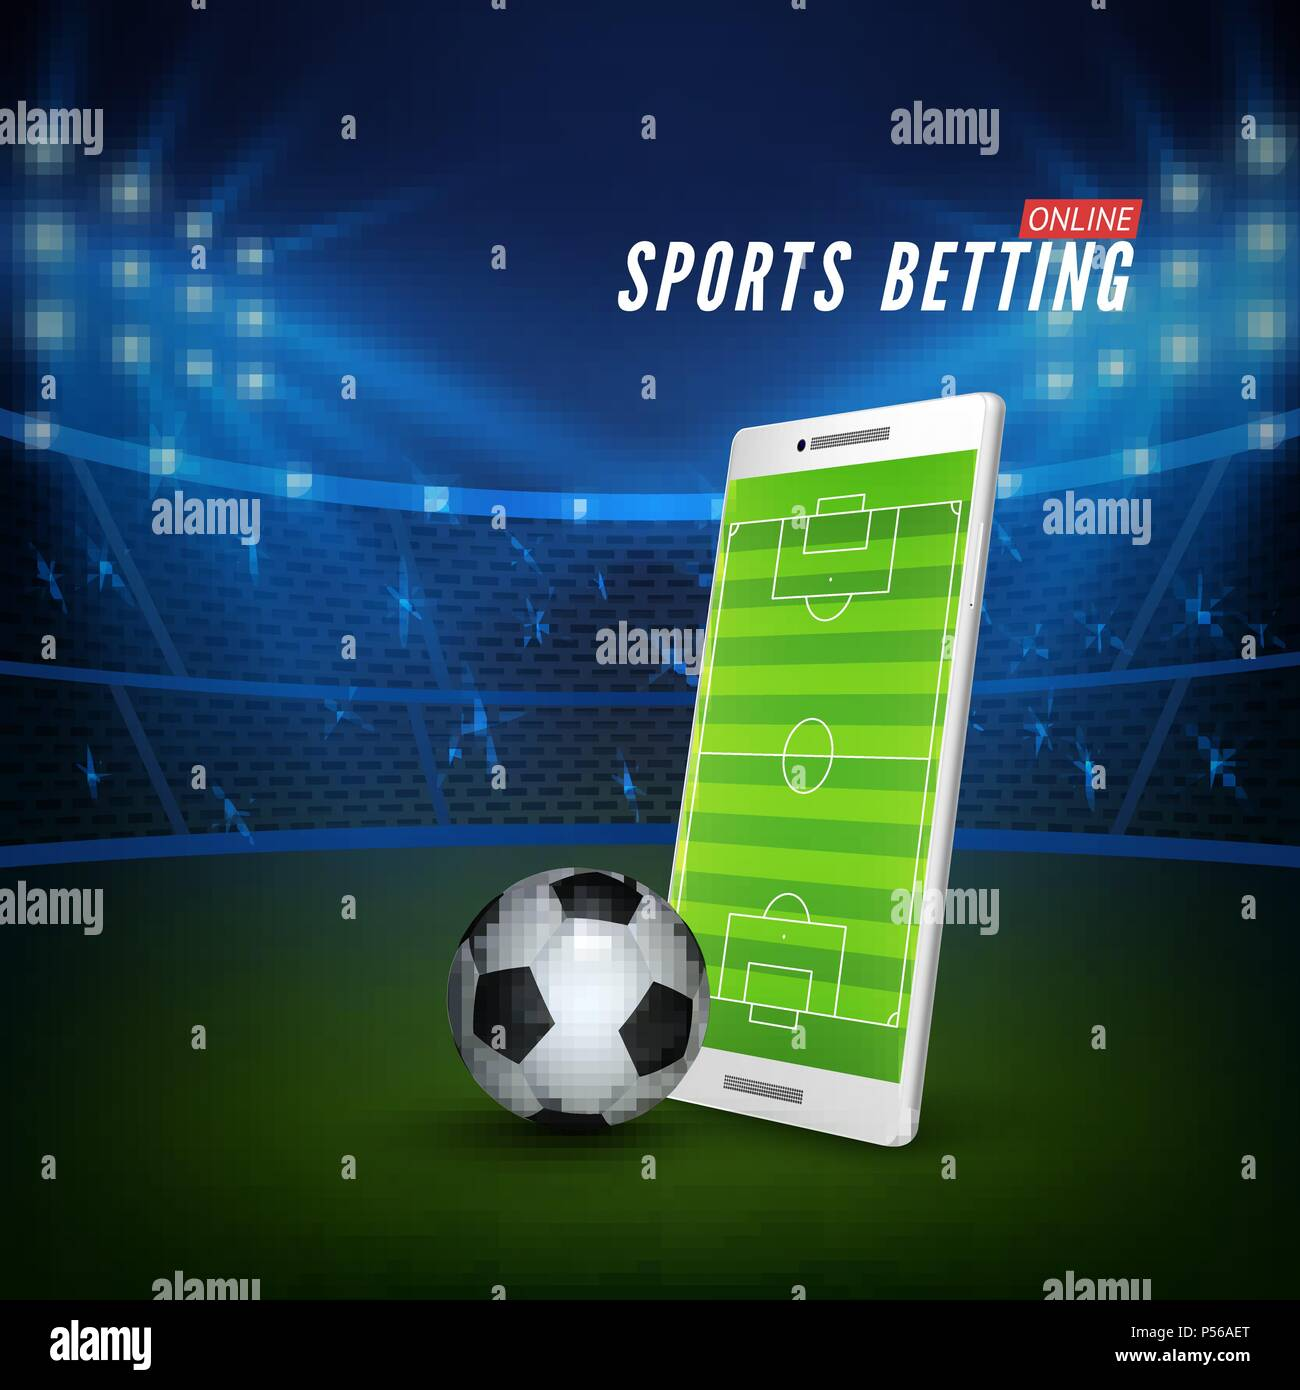 sports betting online web banner template smartphone with football